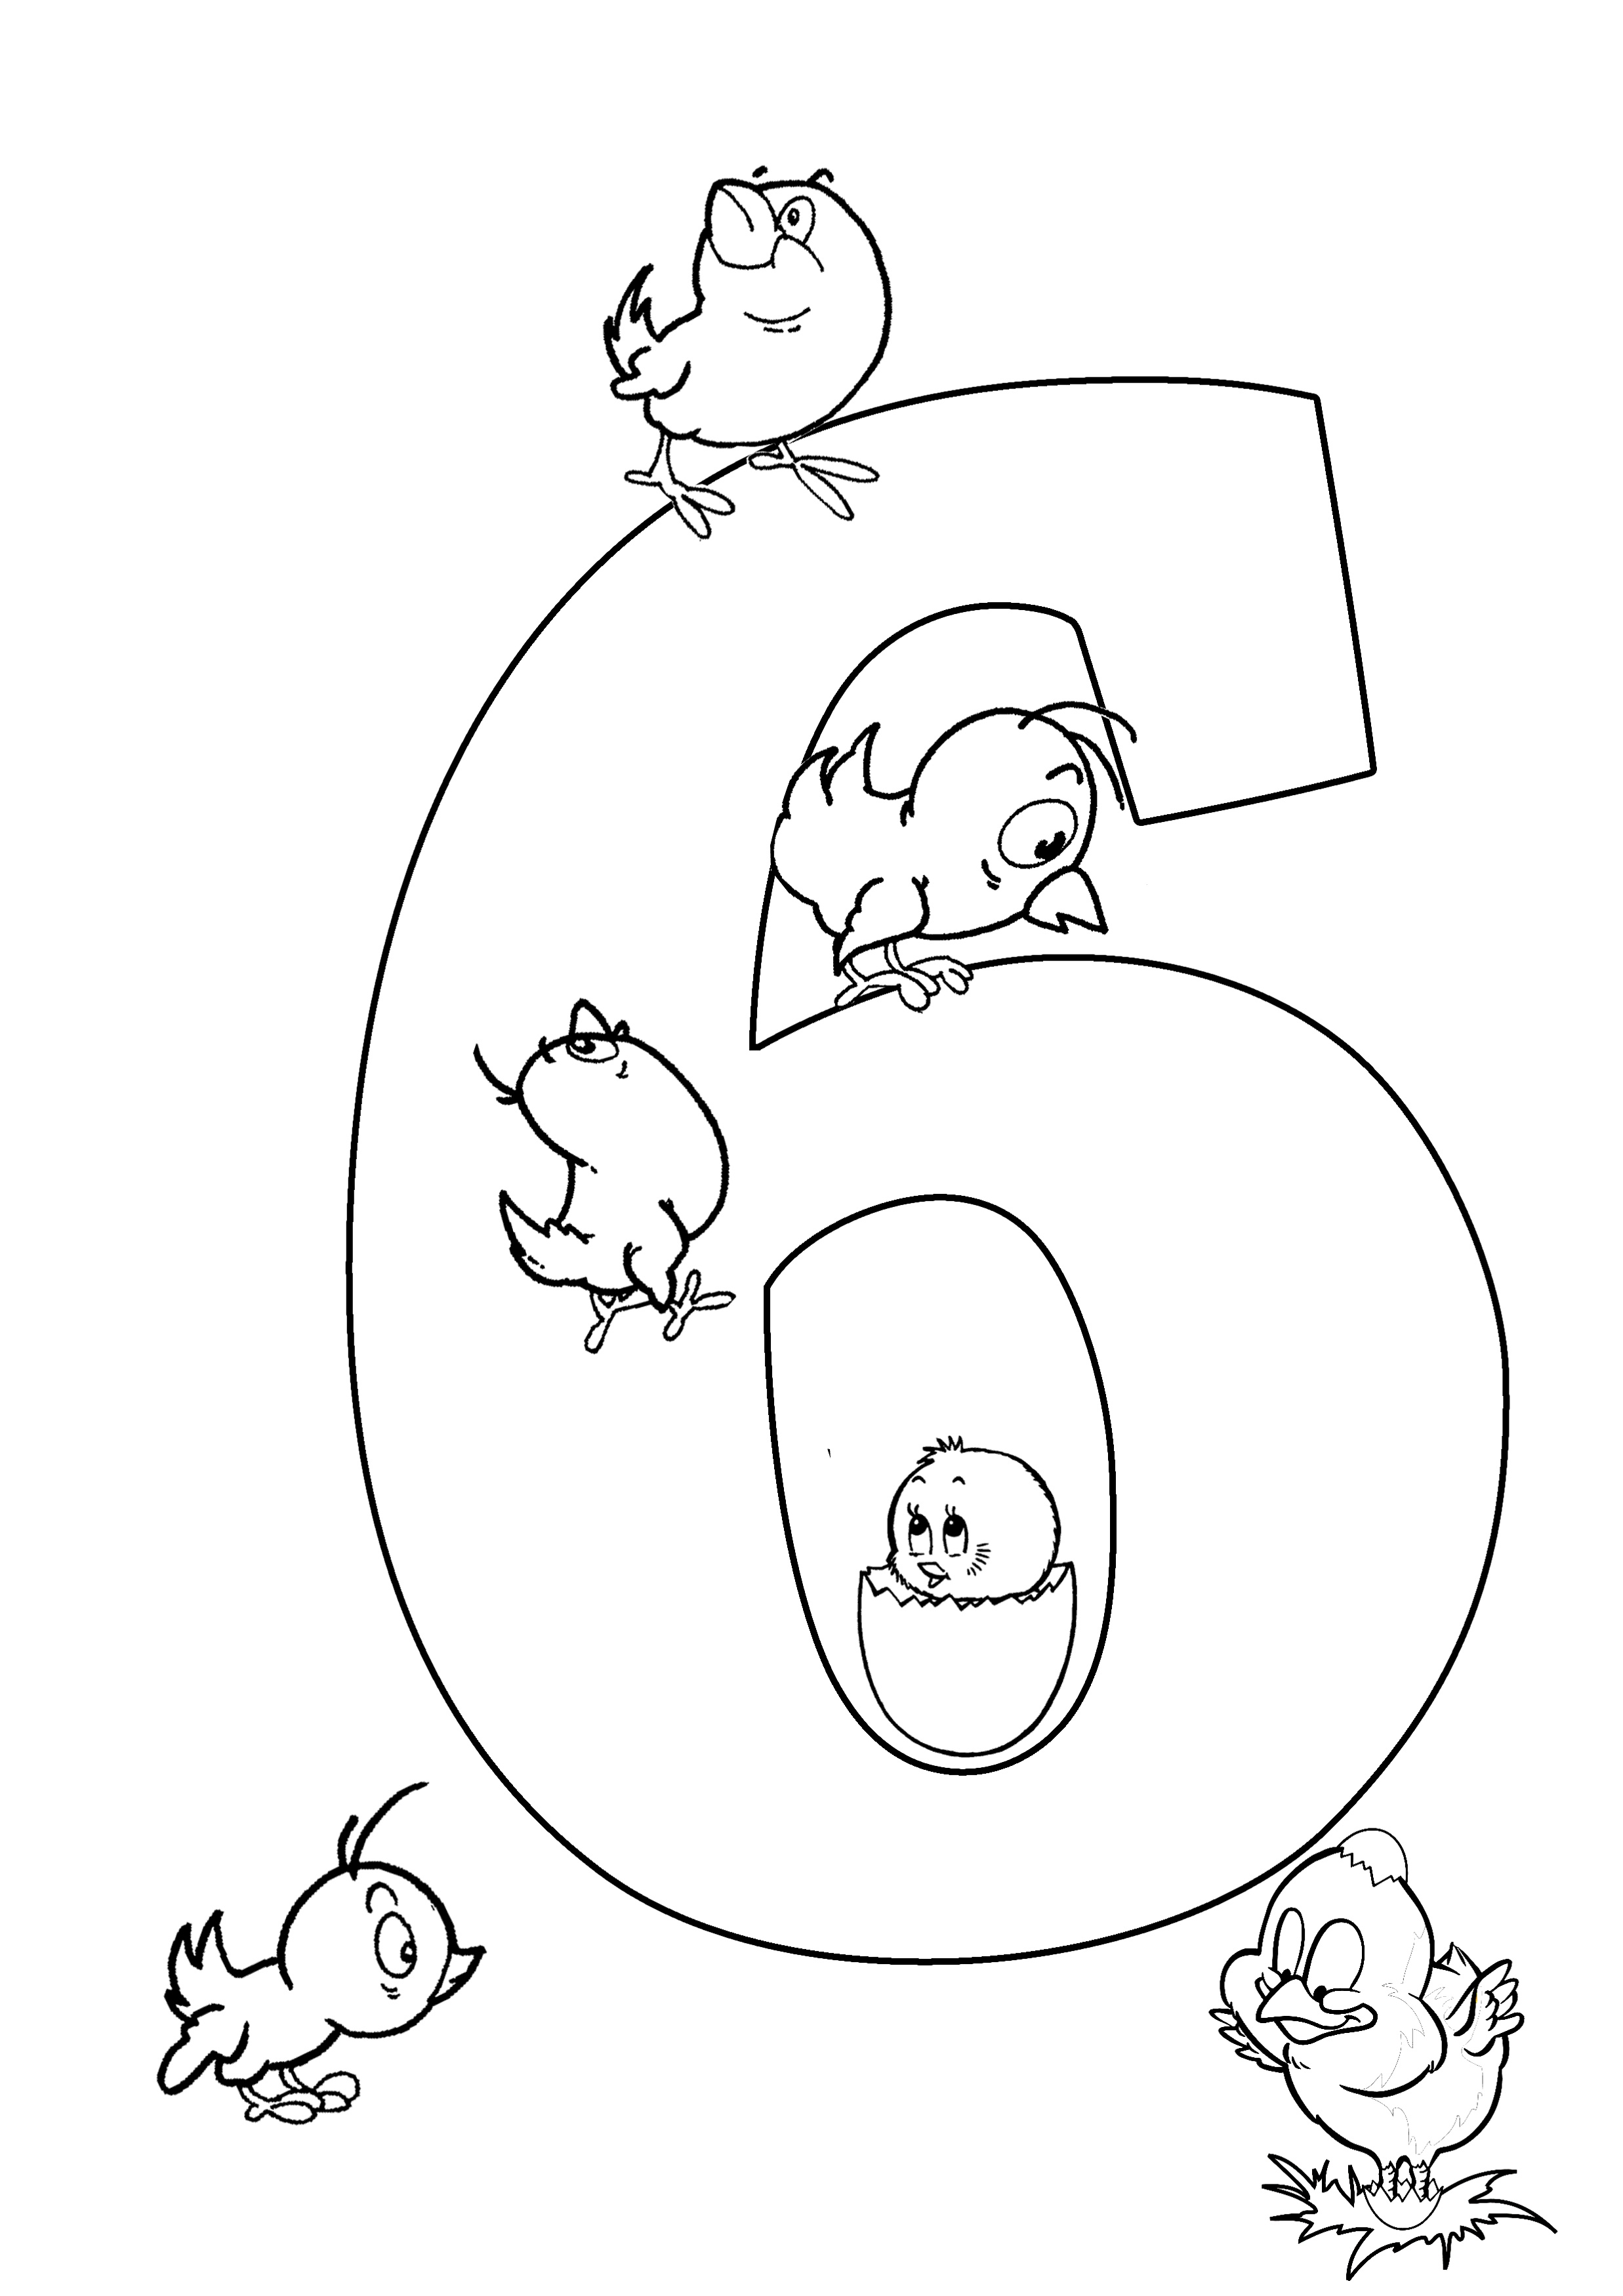 Number Coloring Pages To Print